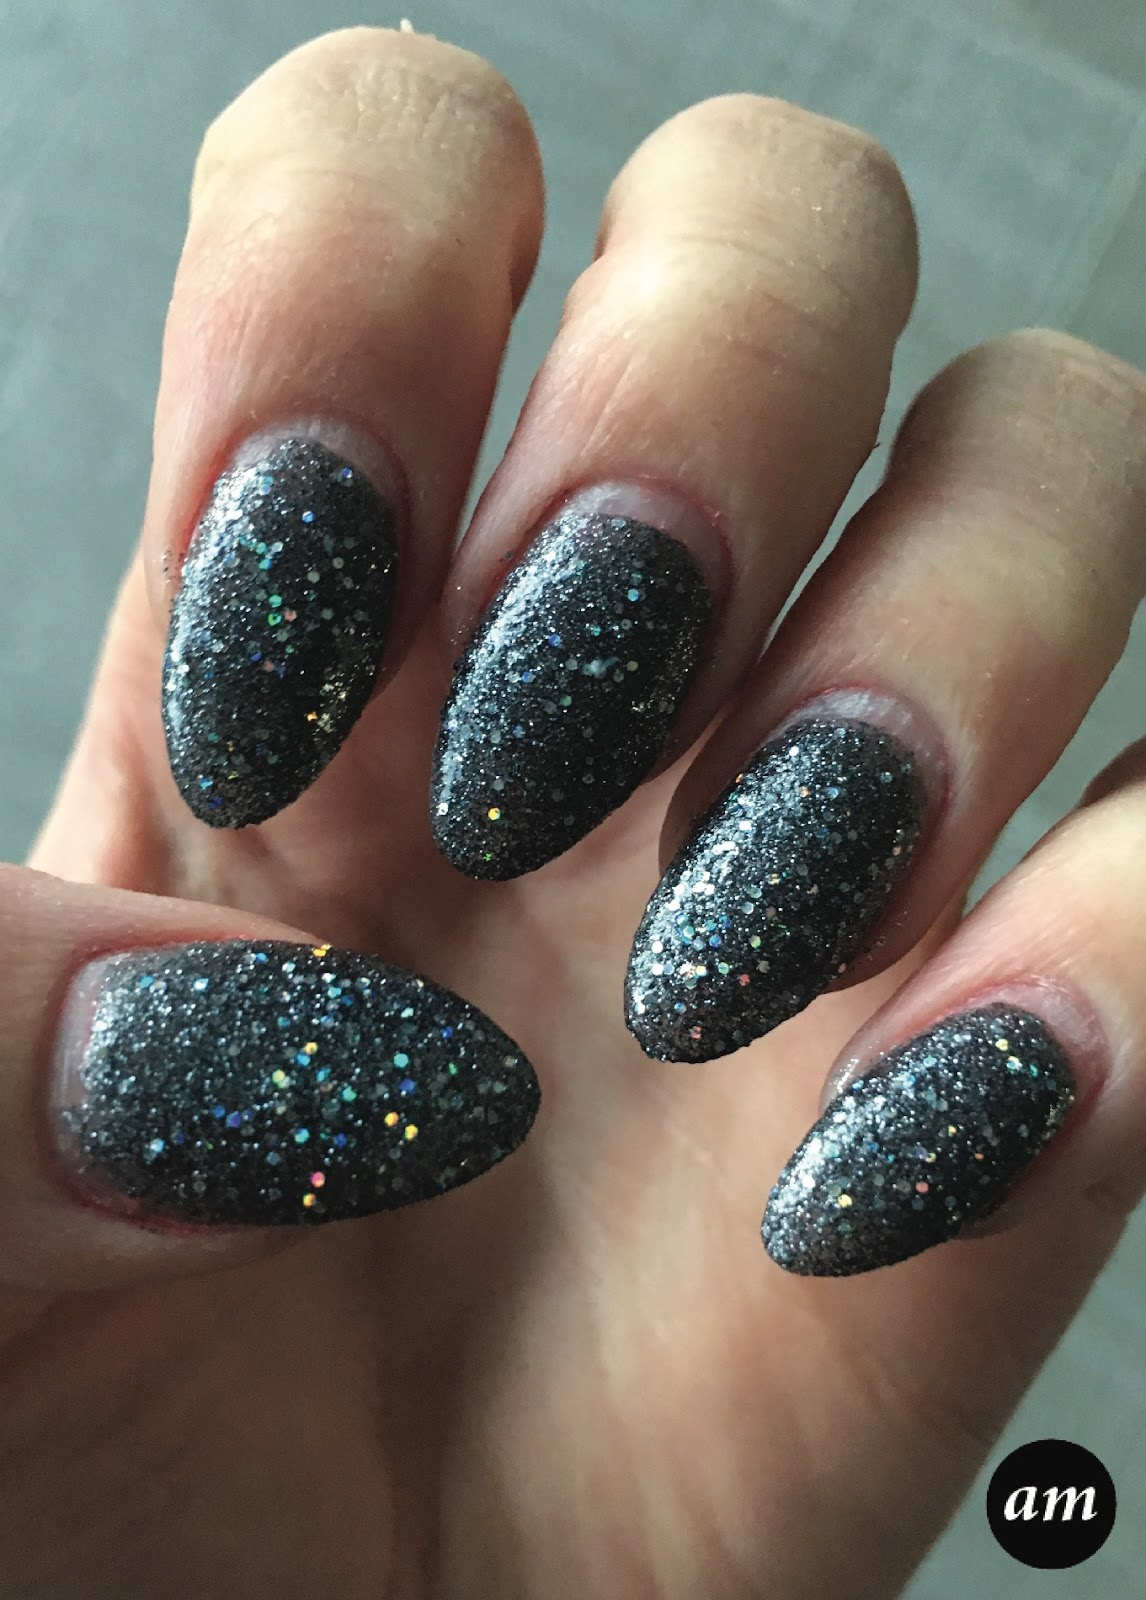 Famous Maximum Growth Nail Polish Huge Where To Buy Essence Nail Polish Solid French Manicure Nail Art Images Hanging Nail Polish Rack Young Sally Hansen Nail Art Pen YellowNail Art Pen Designs Step By Step Amber McNiff | Beauty And Fashion Blog: The Best Glitter Nail ..